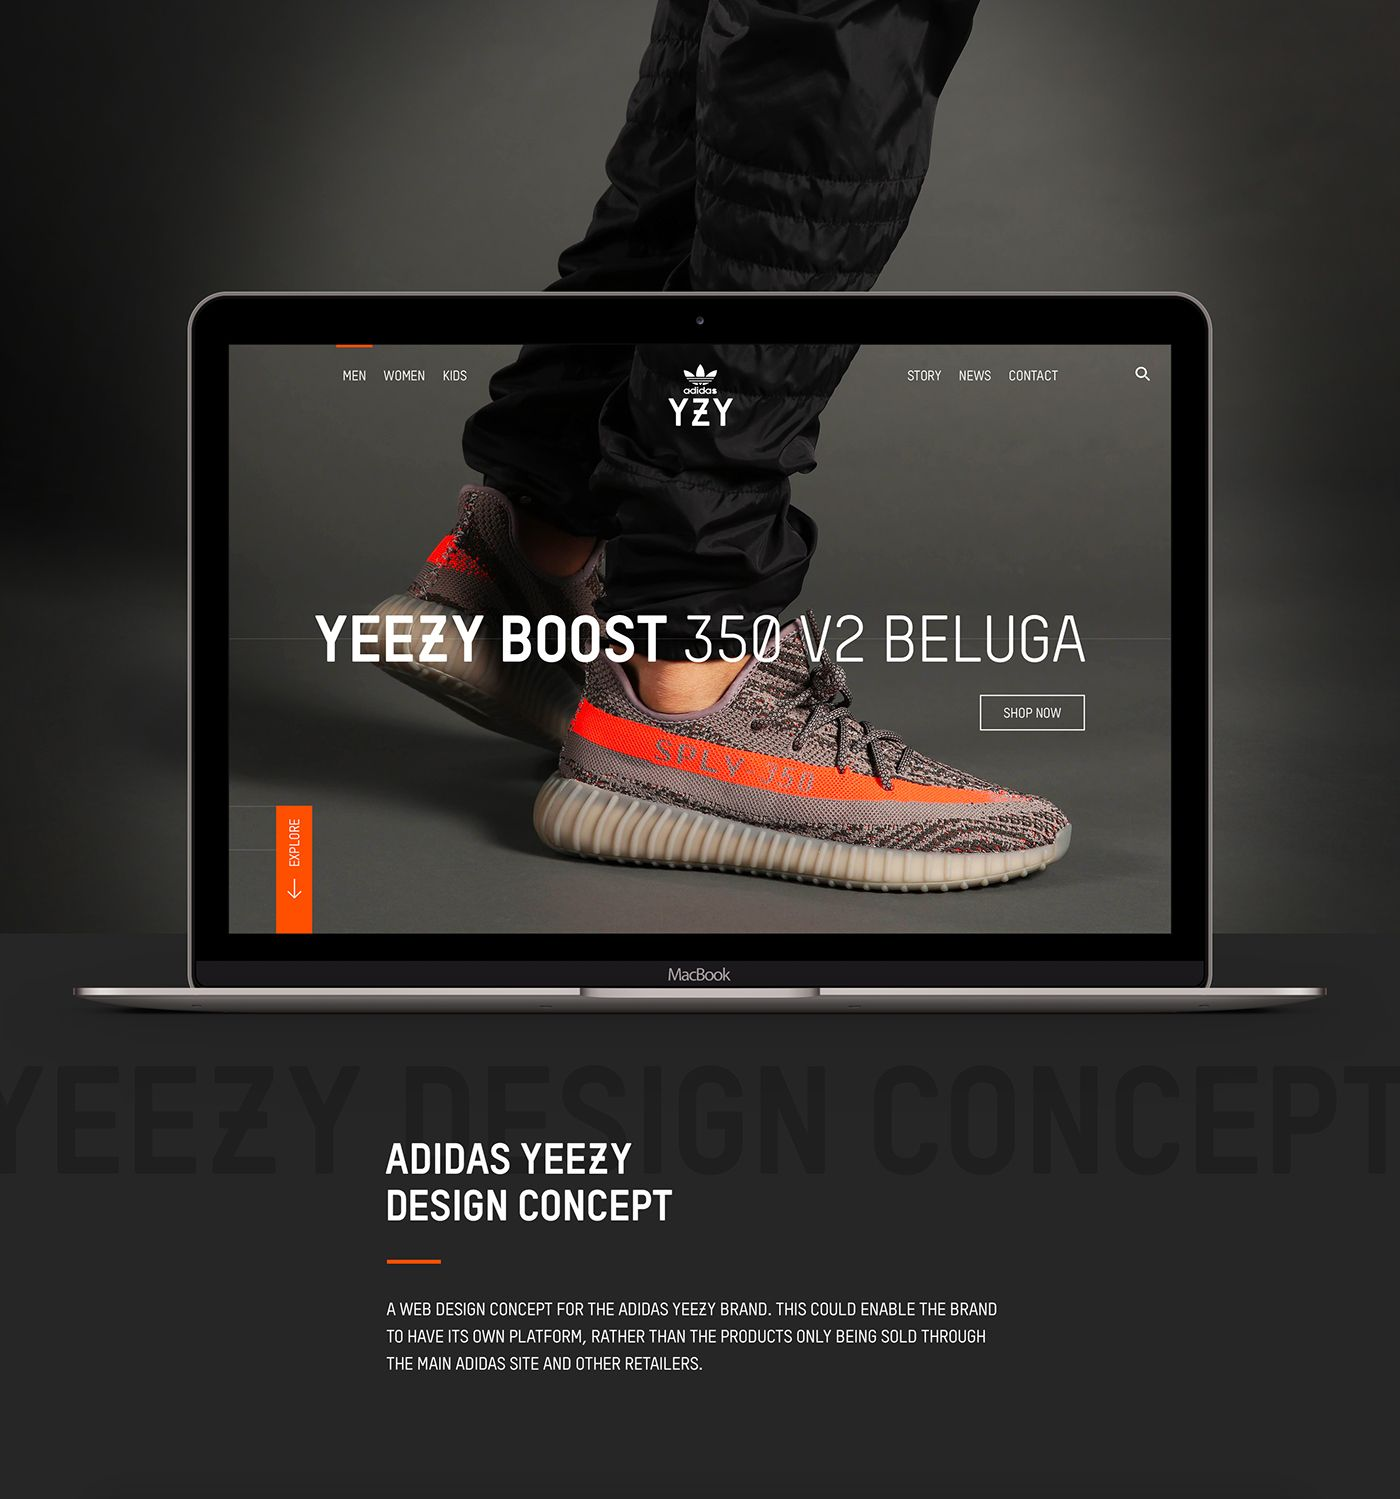 meilleure sélection 62349 01d8a A design concept for the website of the Adidas Yeezy brand ...